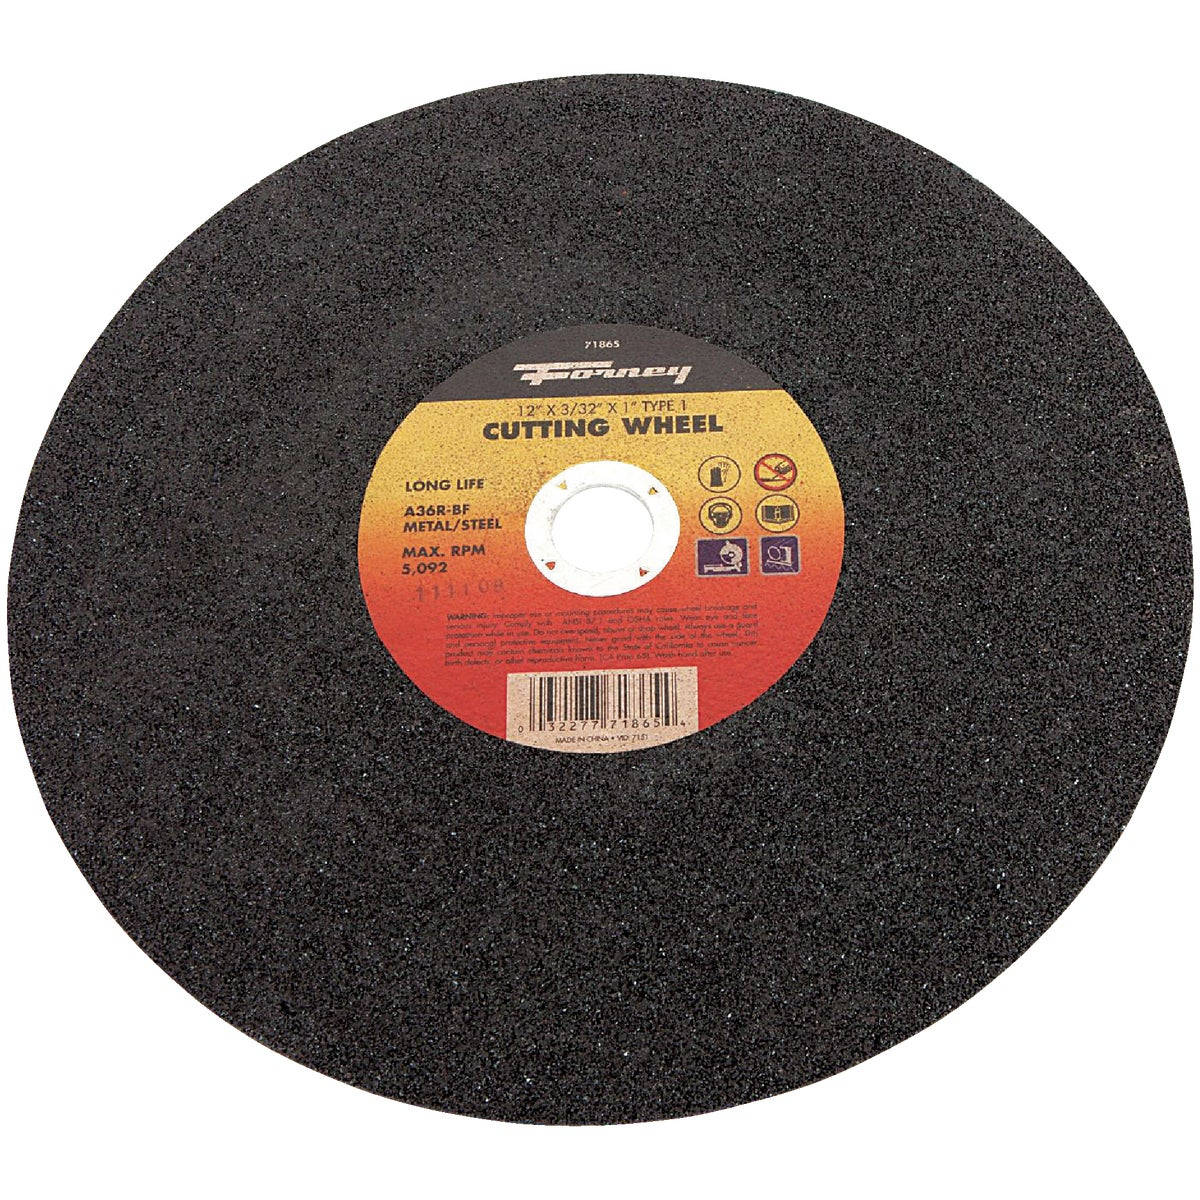 "12"" CUTTING WHEEL"